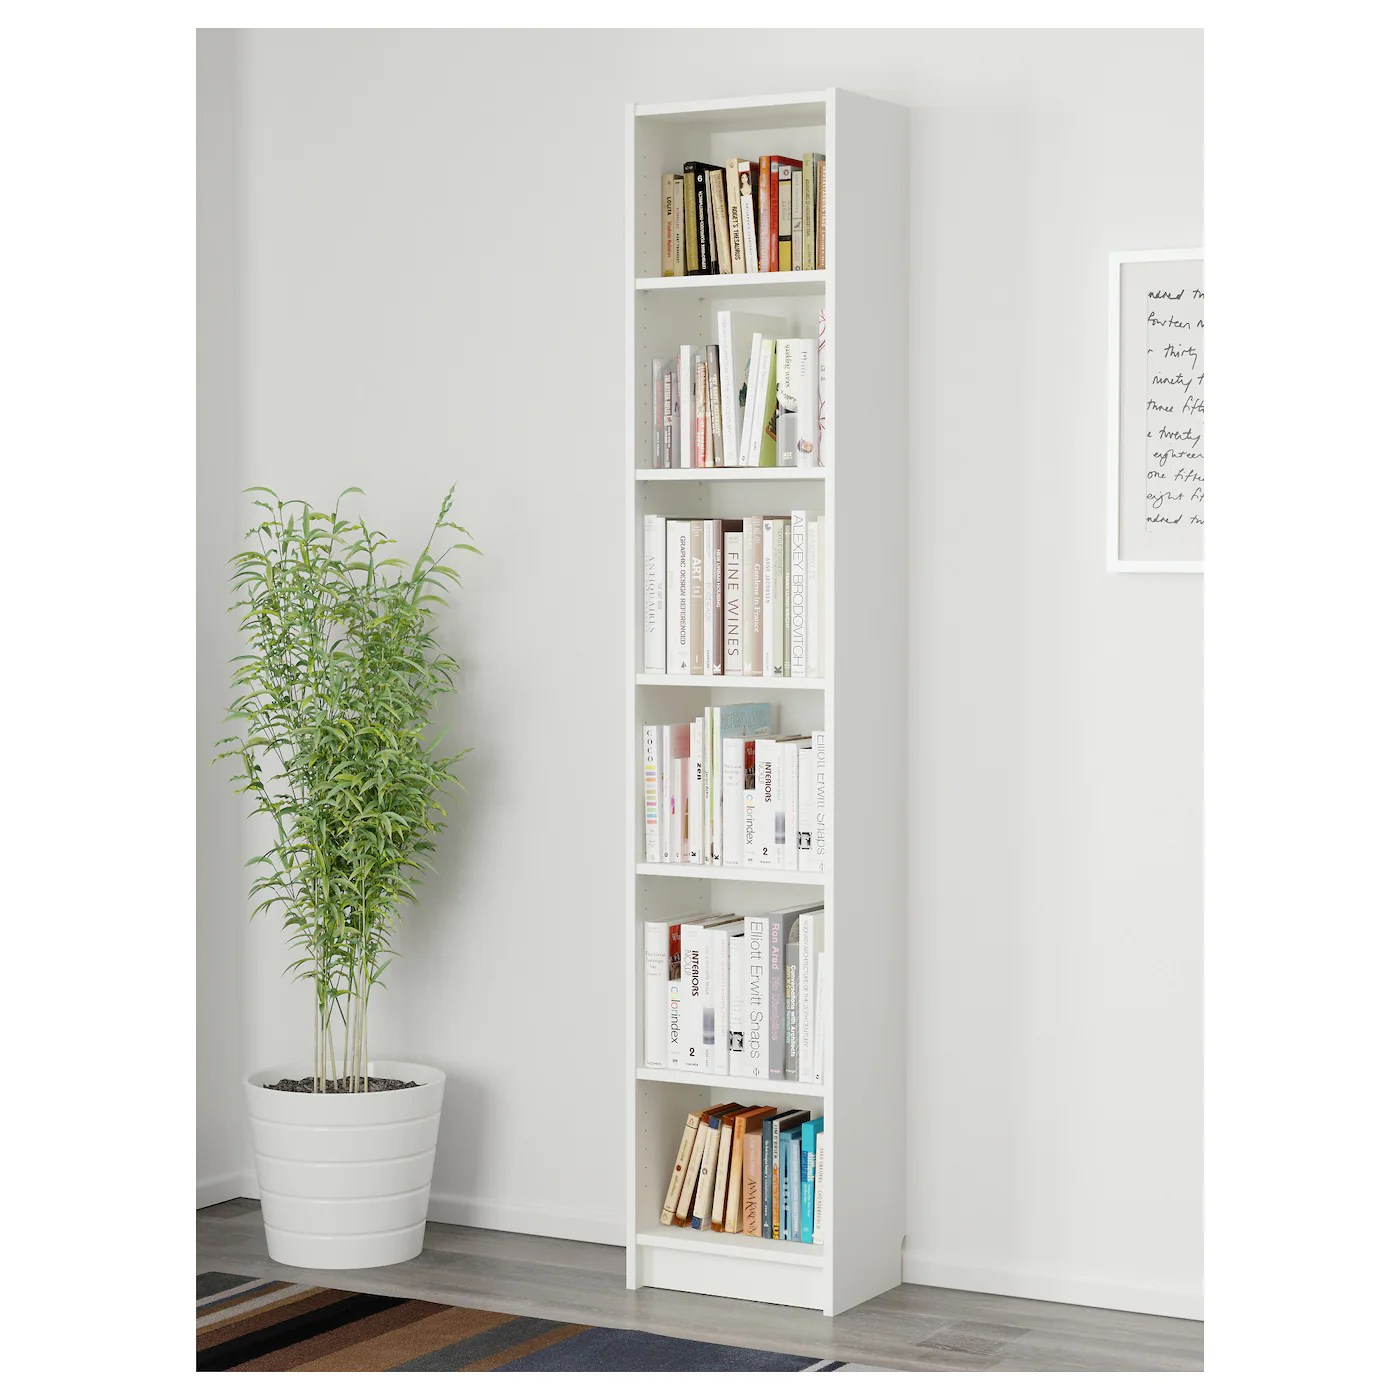 Ikea Billy Bookcase White Billy Bookcase White 40 X 28 X 202 Cm Ikea